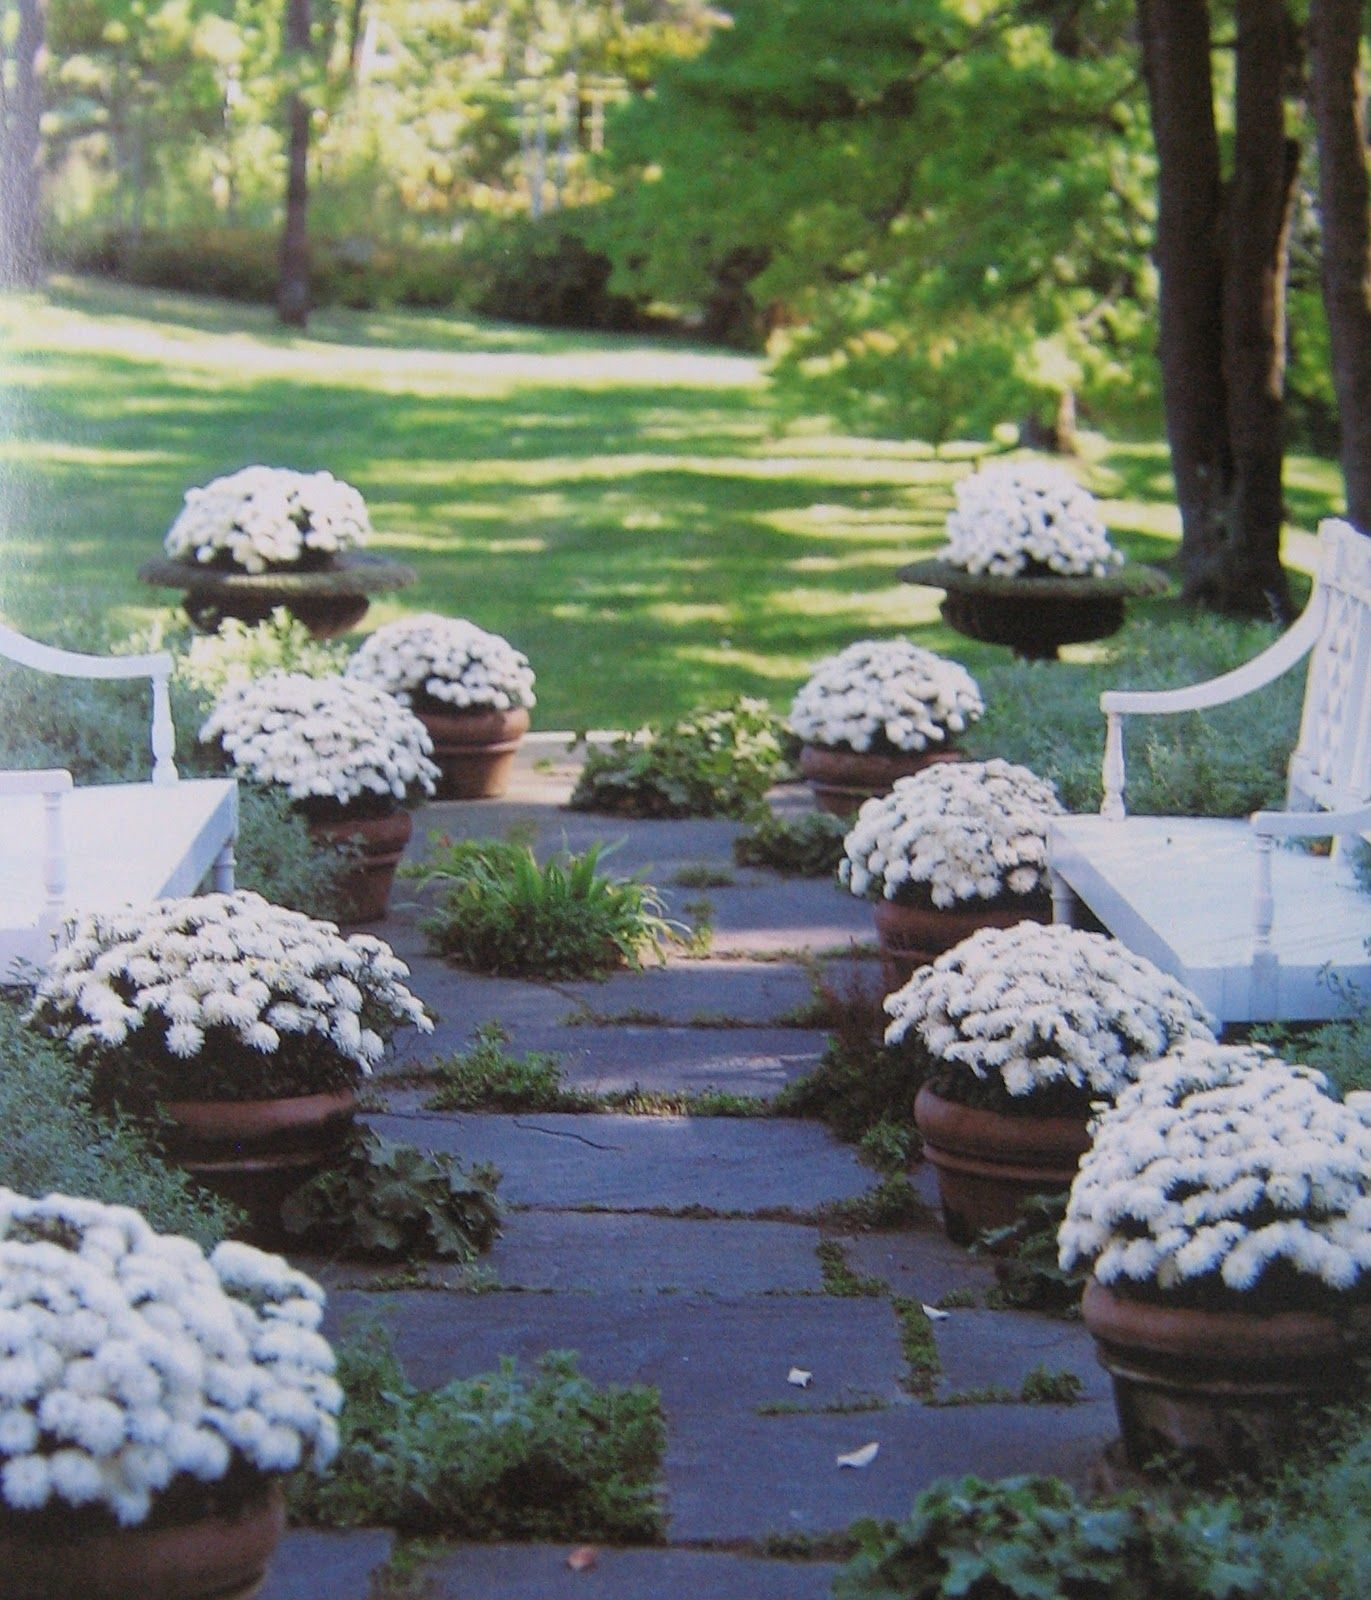 Garden wedding decorations night  White mums seasonal for a fall wedding which keeps prices down